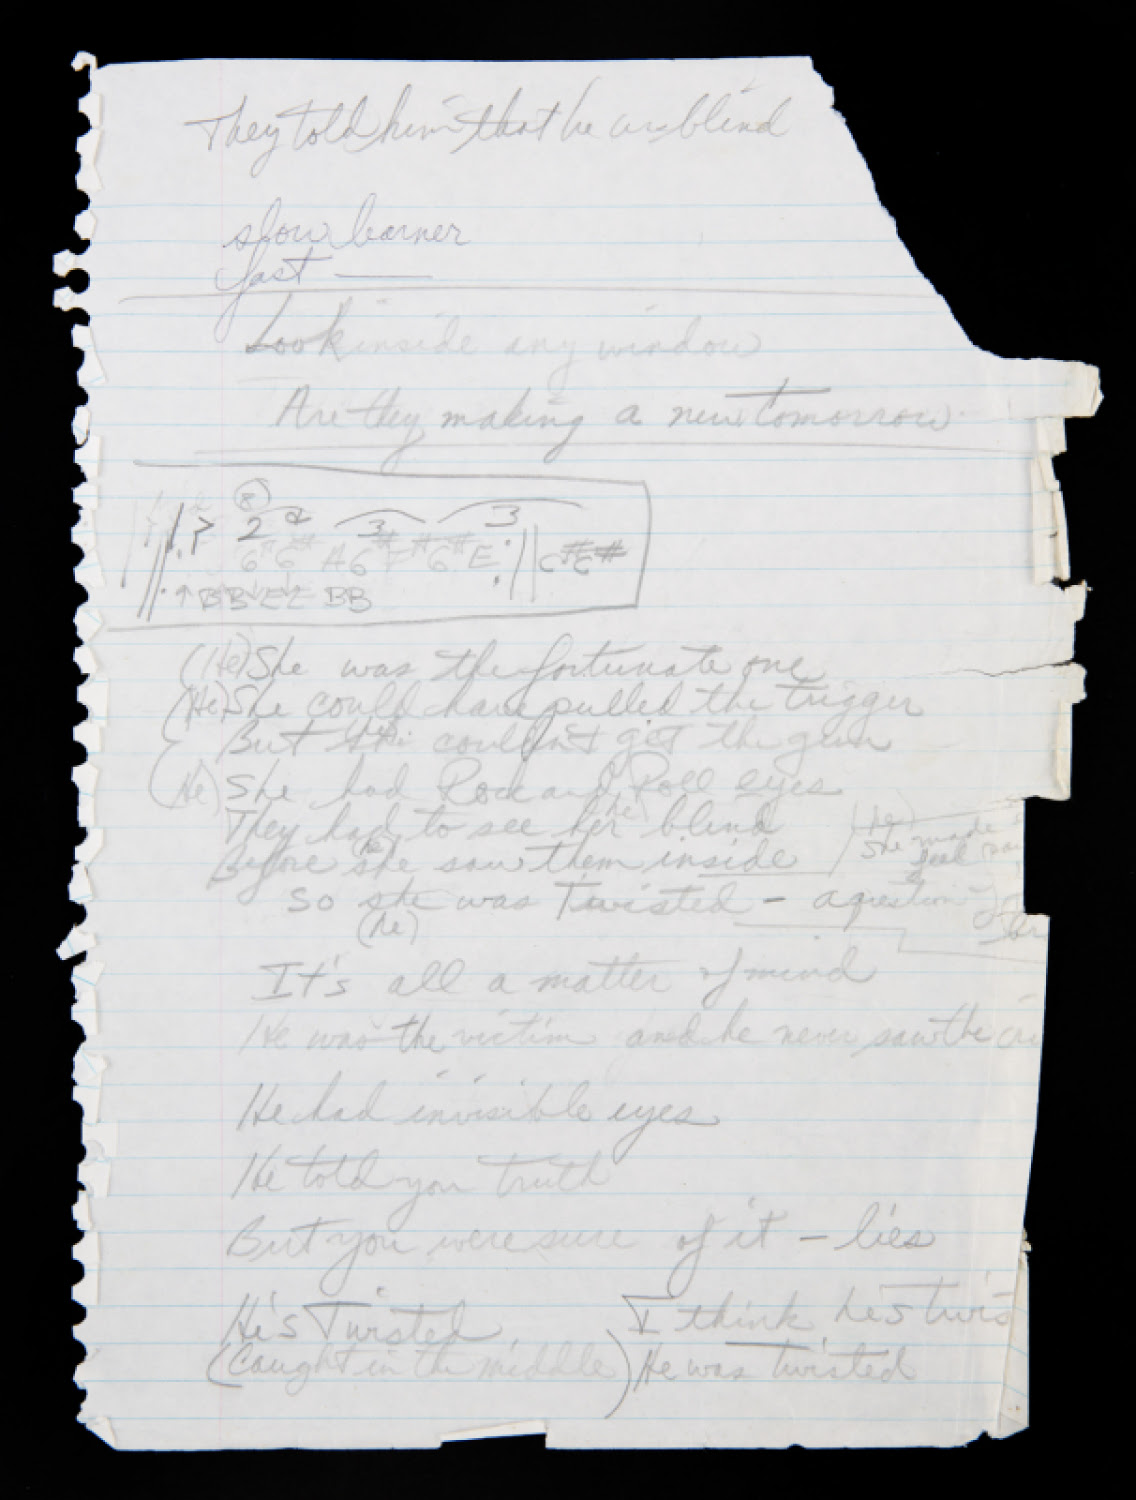 RONNIE JAMES DIO HANDWRITTEN LYRICS